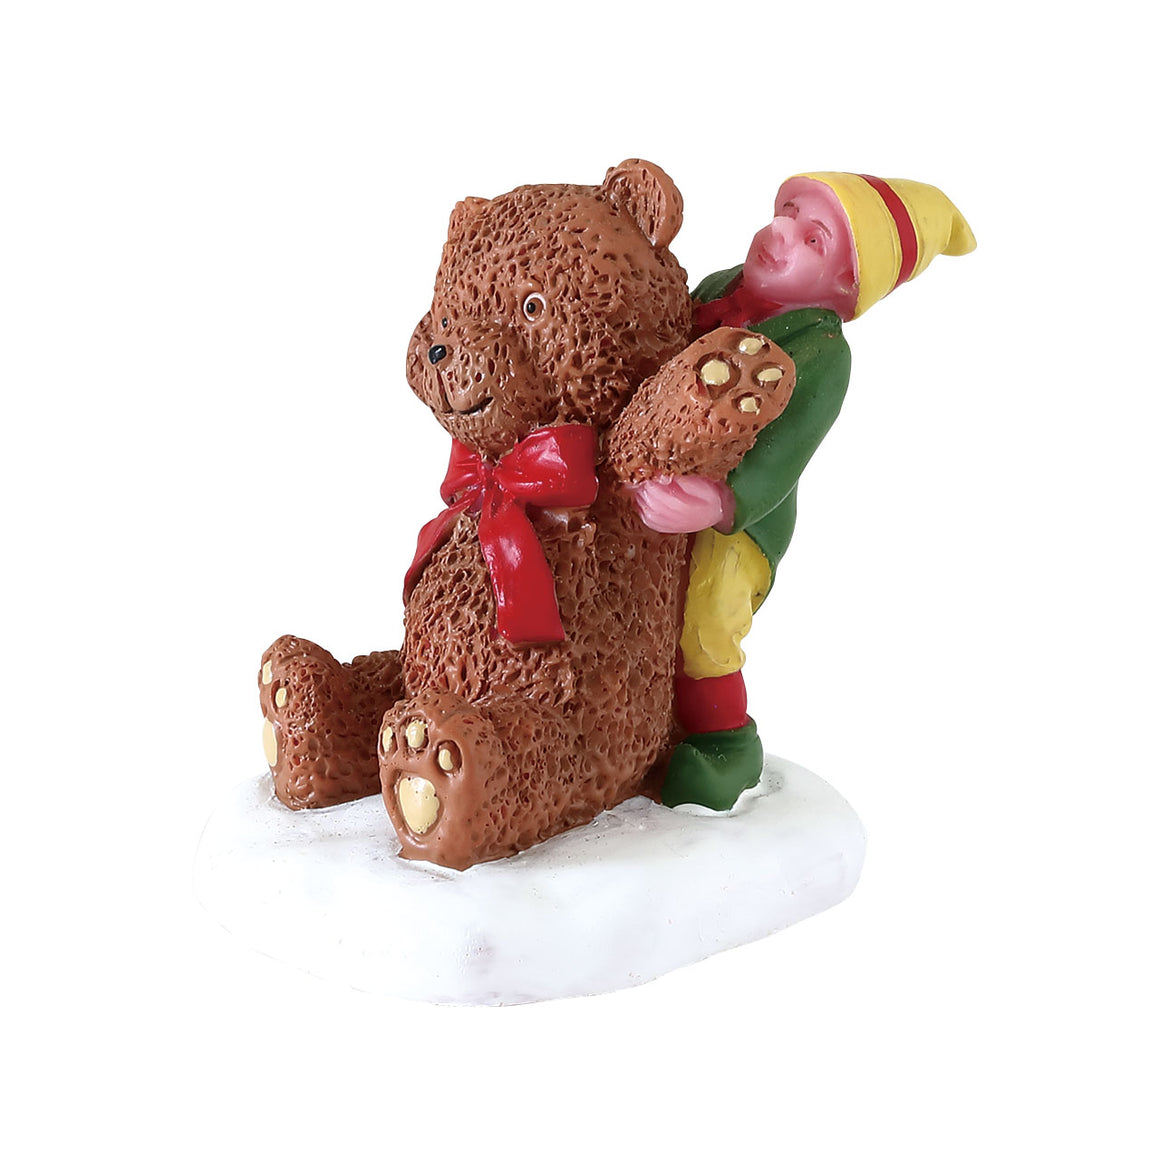 Lemax 72554 Big Bear, Figurine- Gift Spice